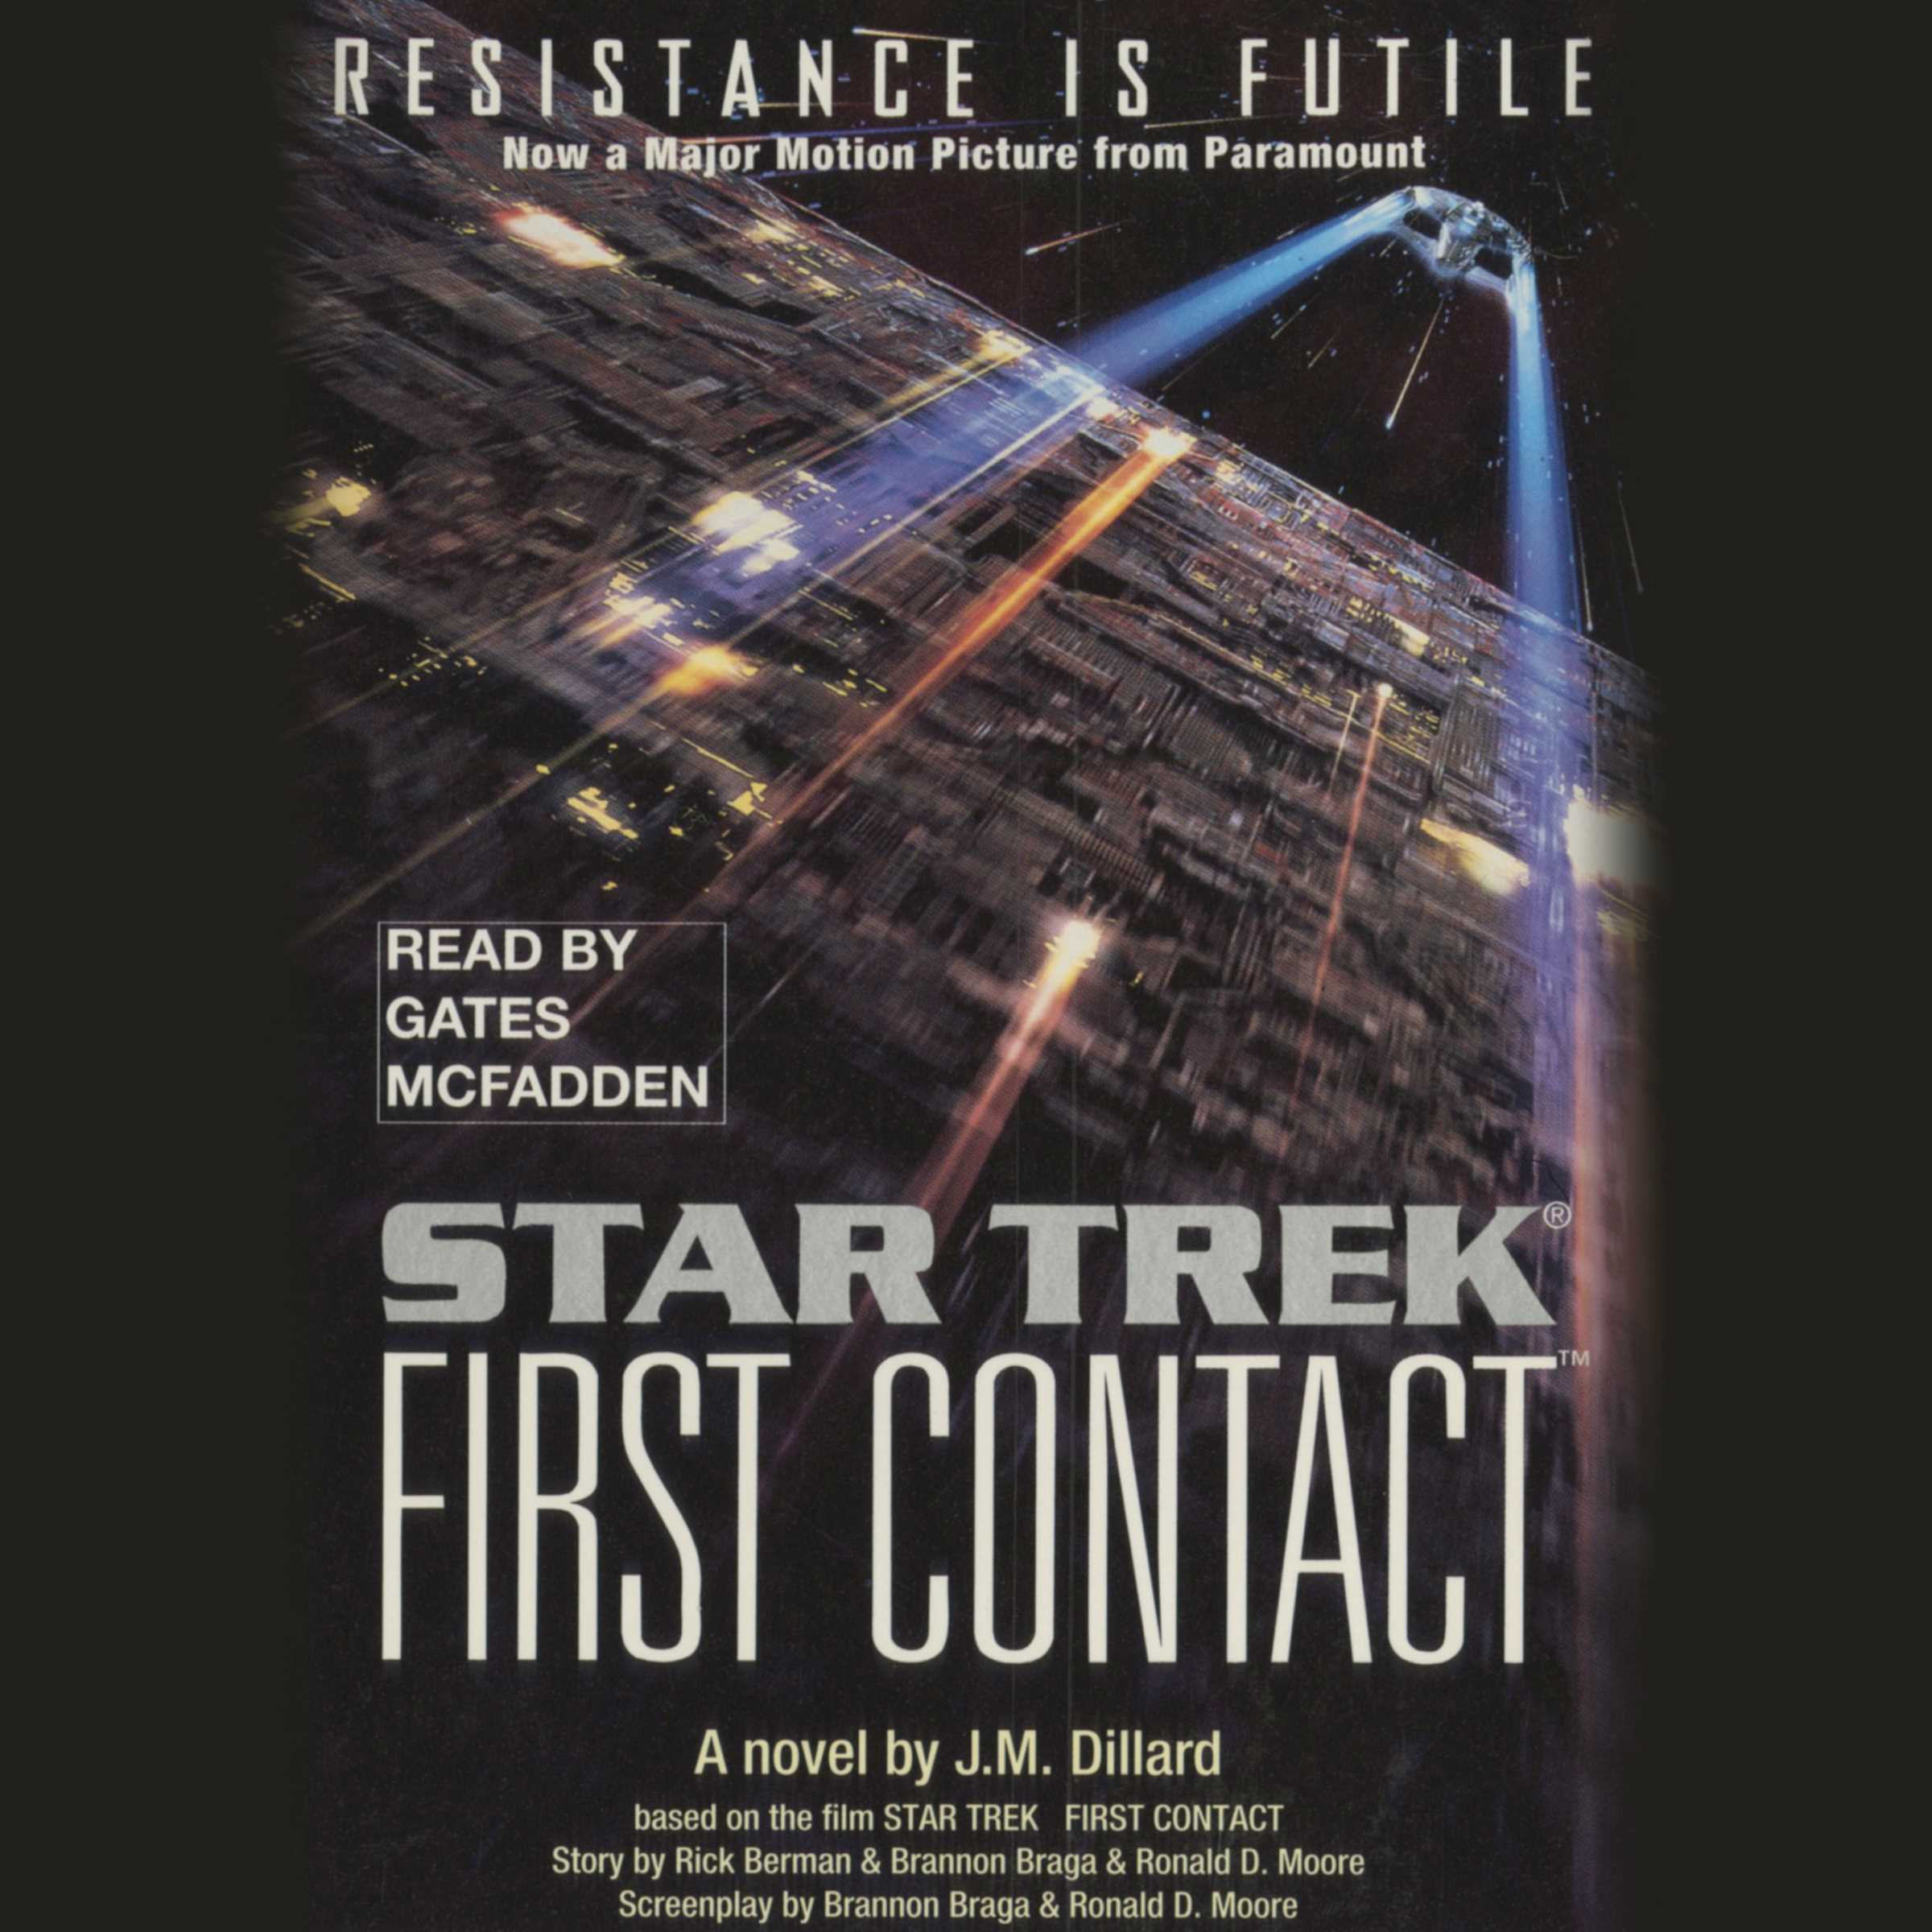 Star-trek-first-contact-9780743546355_hr